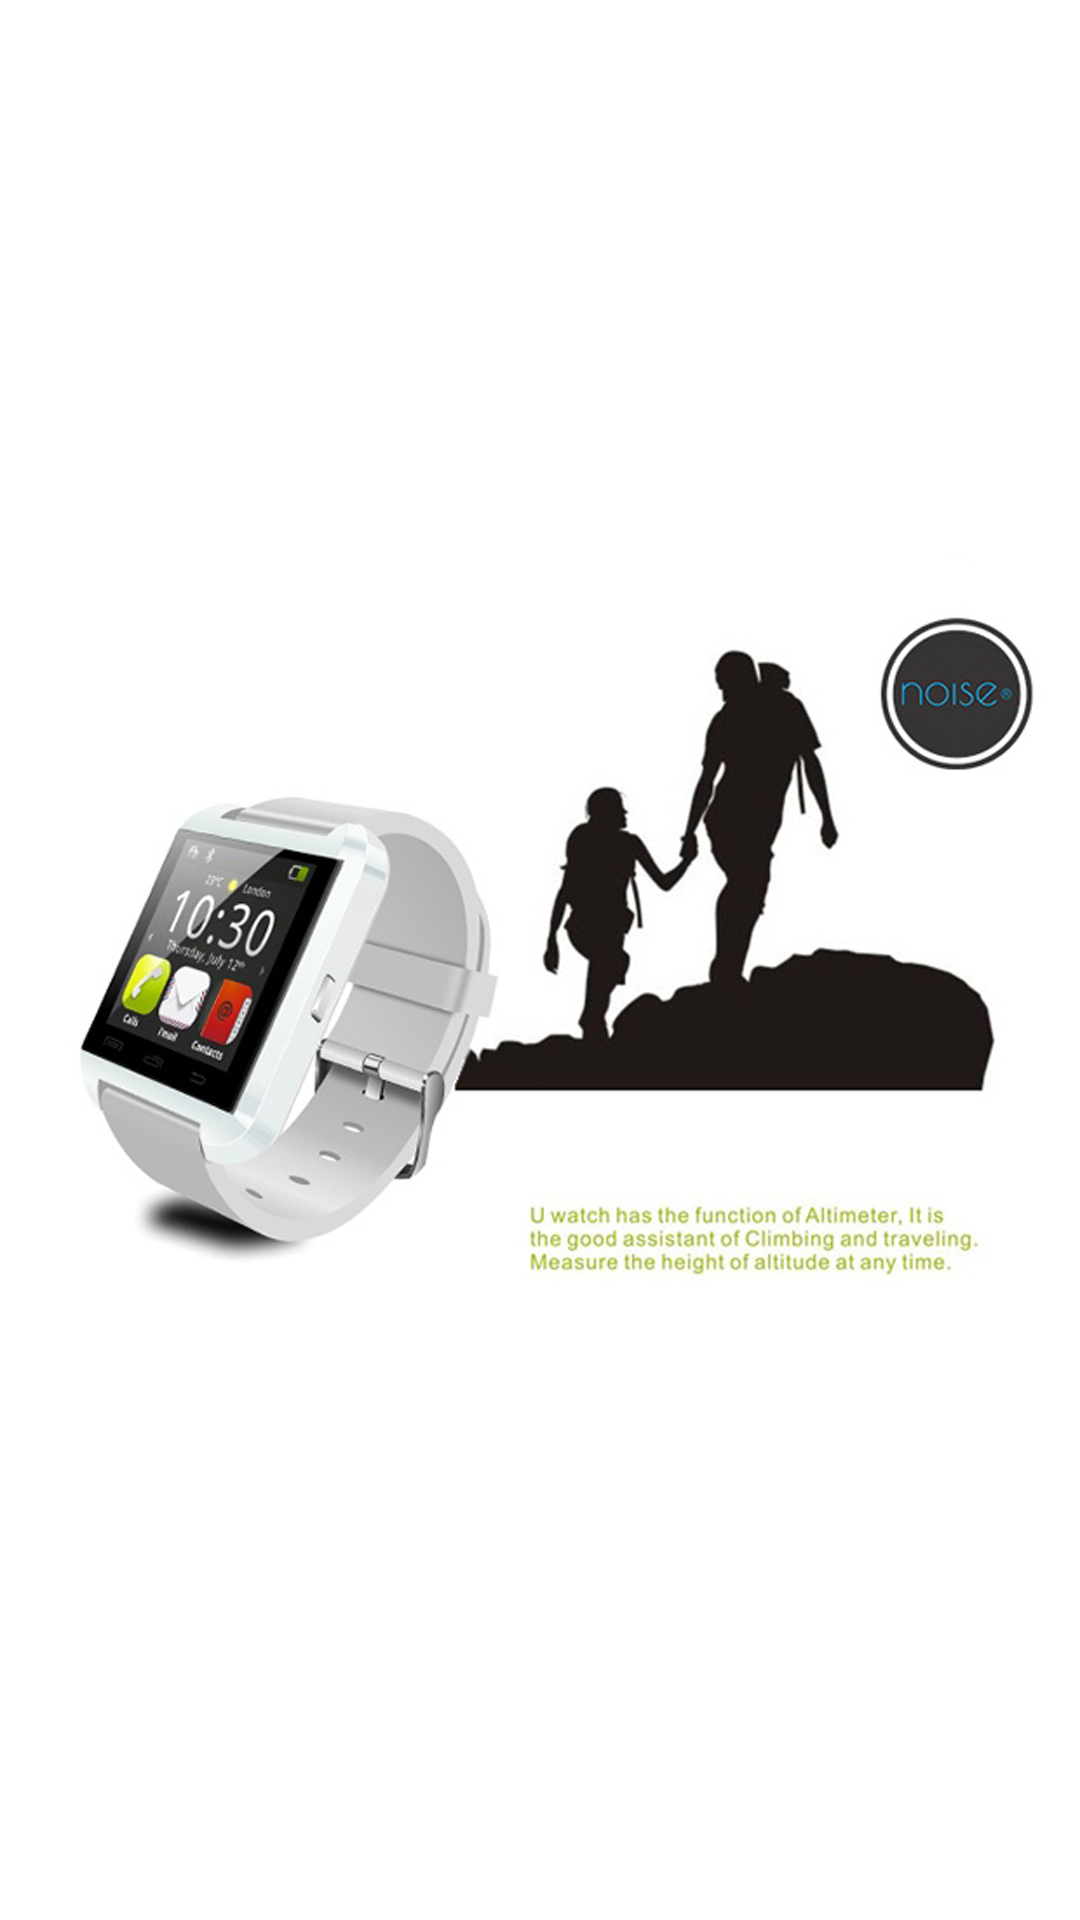 Noise u8 White Android Smart Watch compatible with IOS